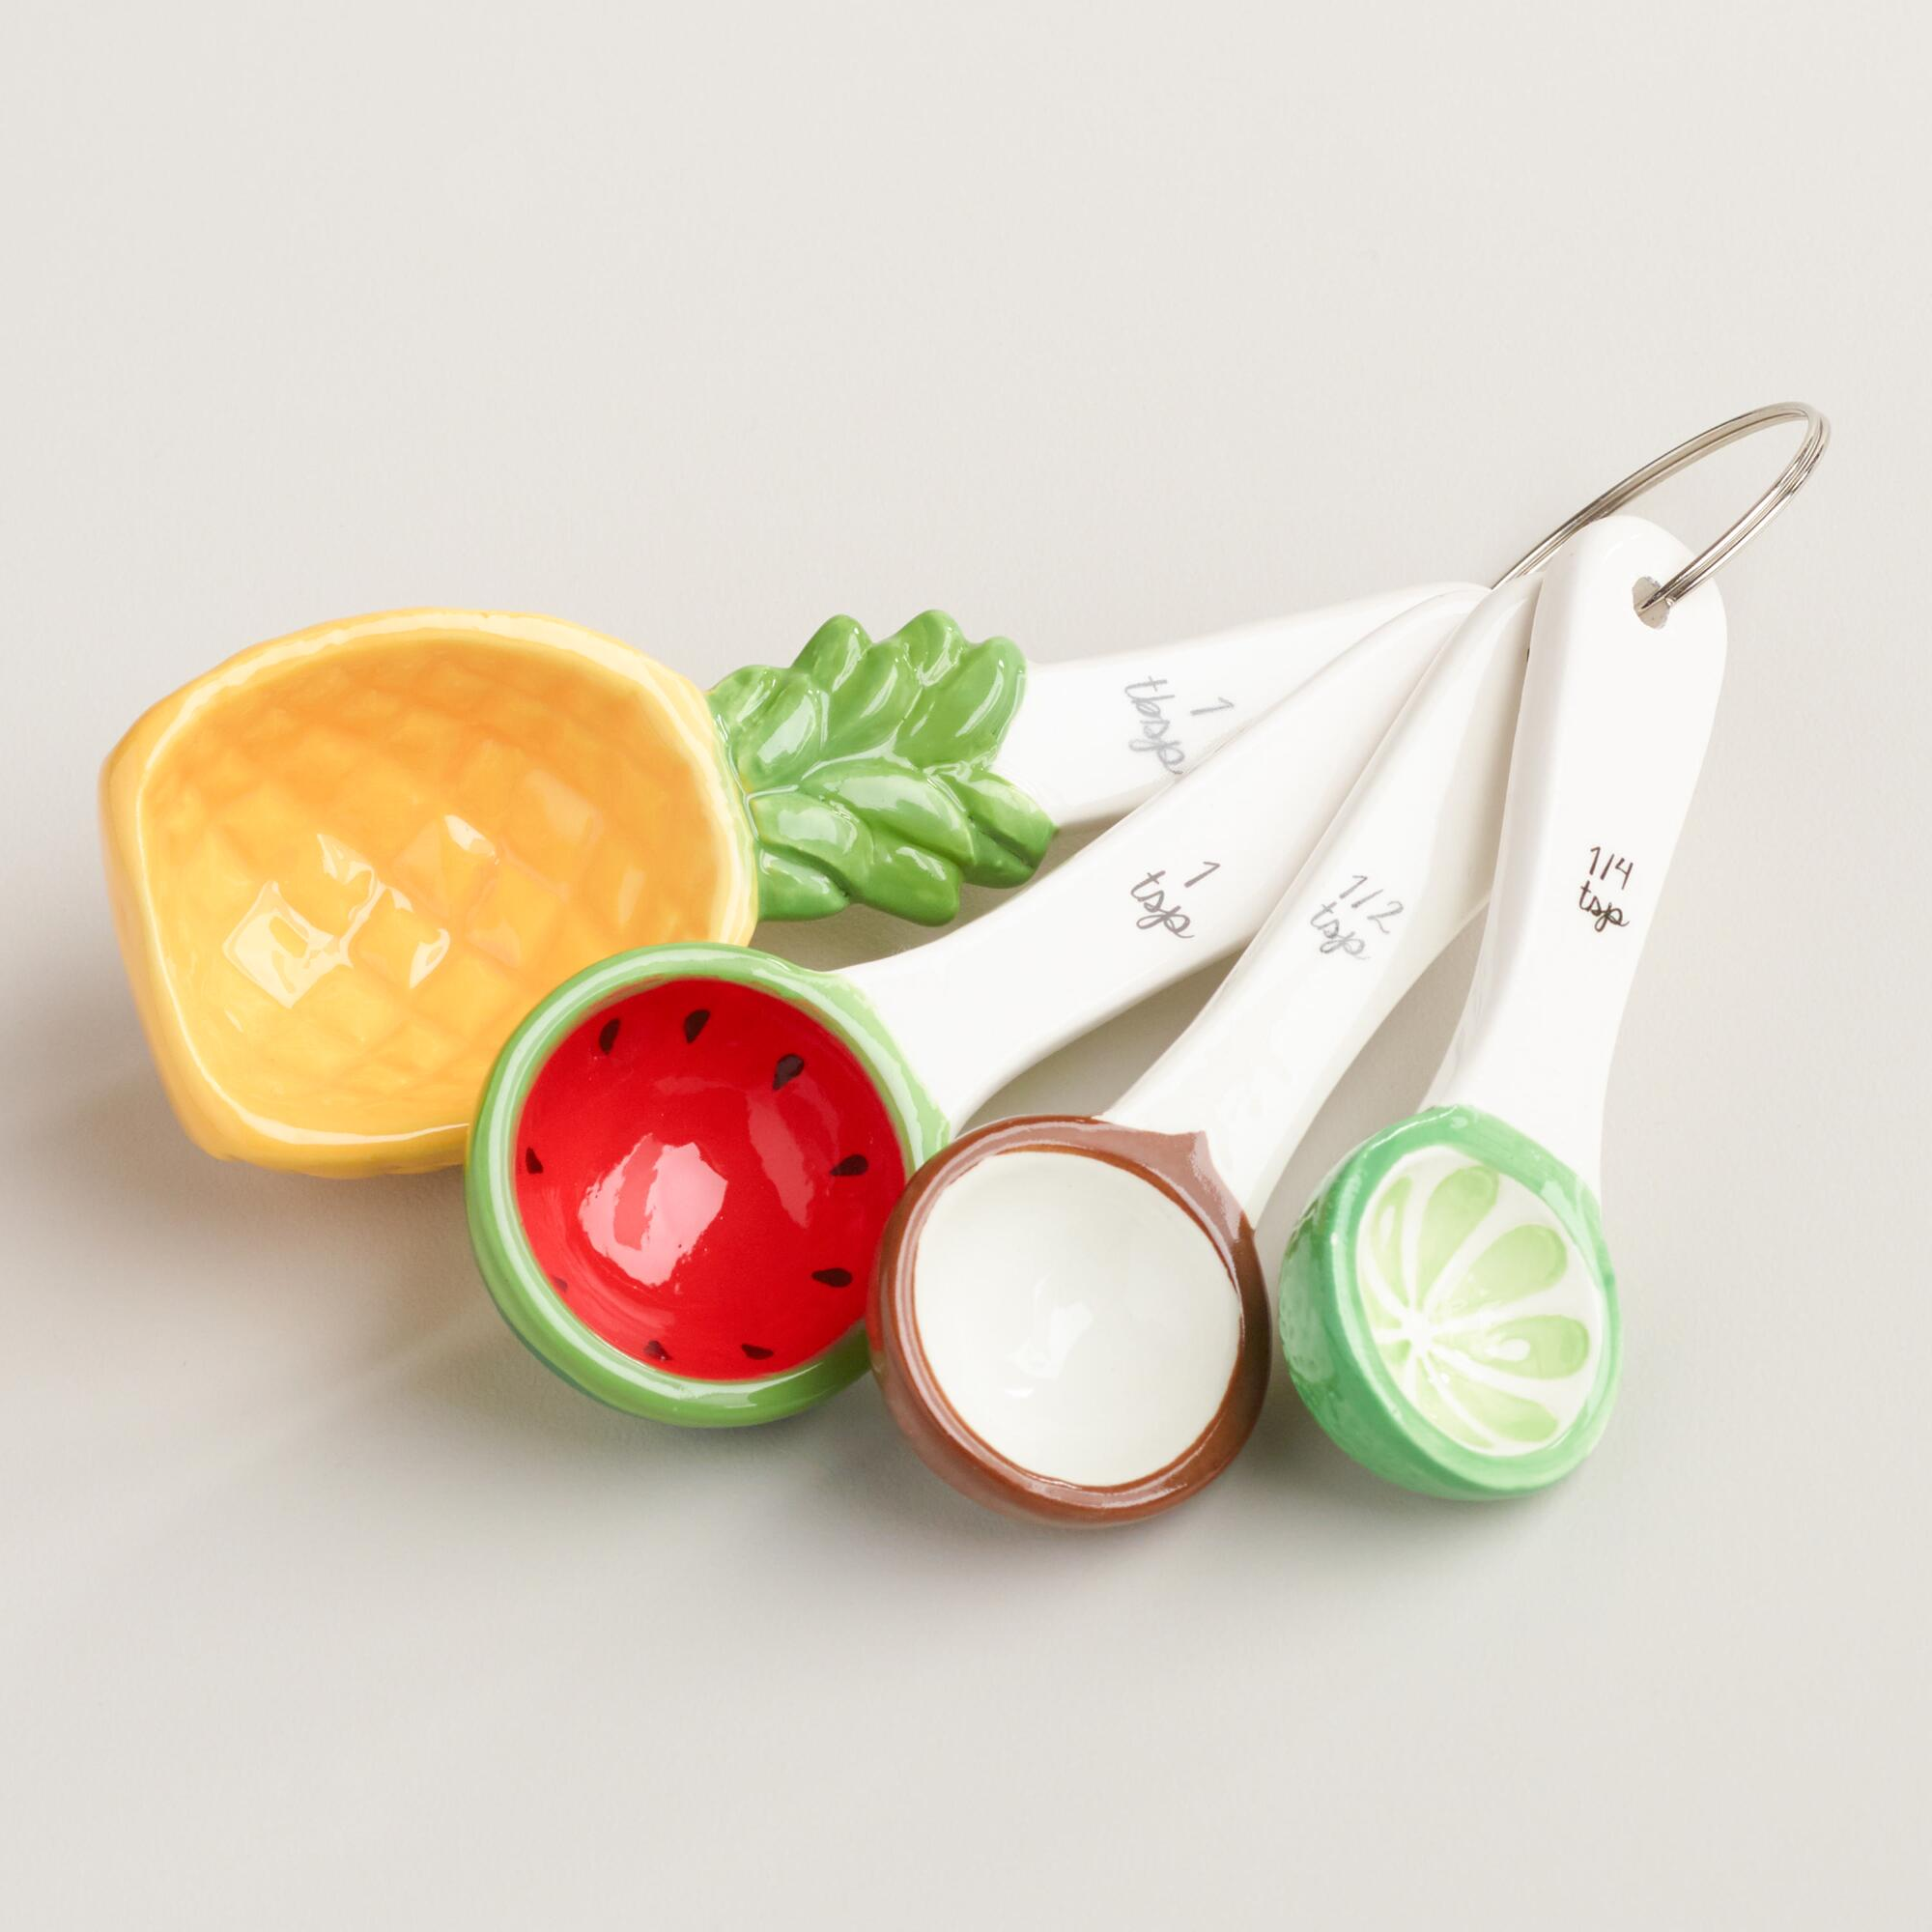 Tropical Fruit Ceramic Measuring Spoons World Market